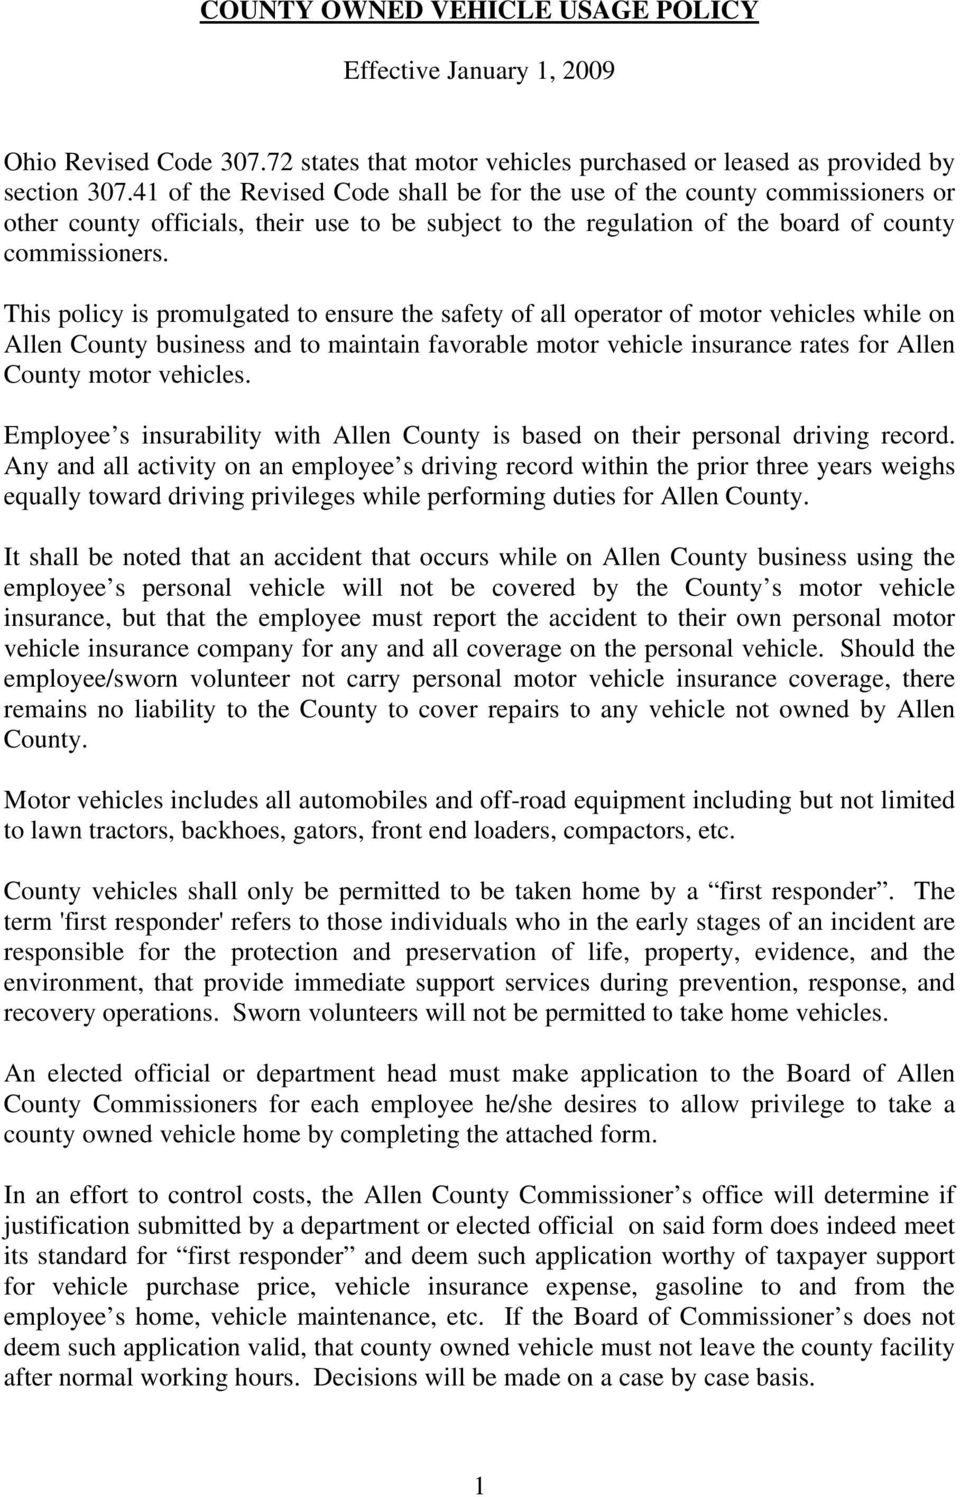 This policy is promulgated to ensure the safety of all operator of motor vehicles while on Allen County business and to maintain favorable motor vehicle insurance rates for Allen County motor